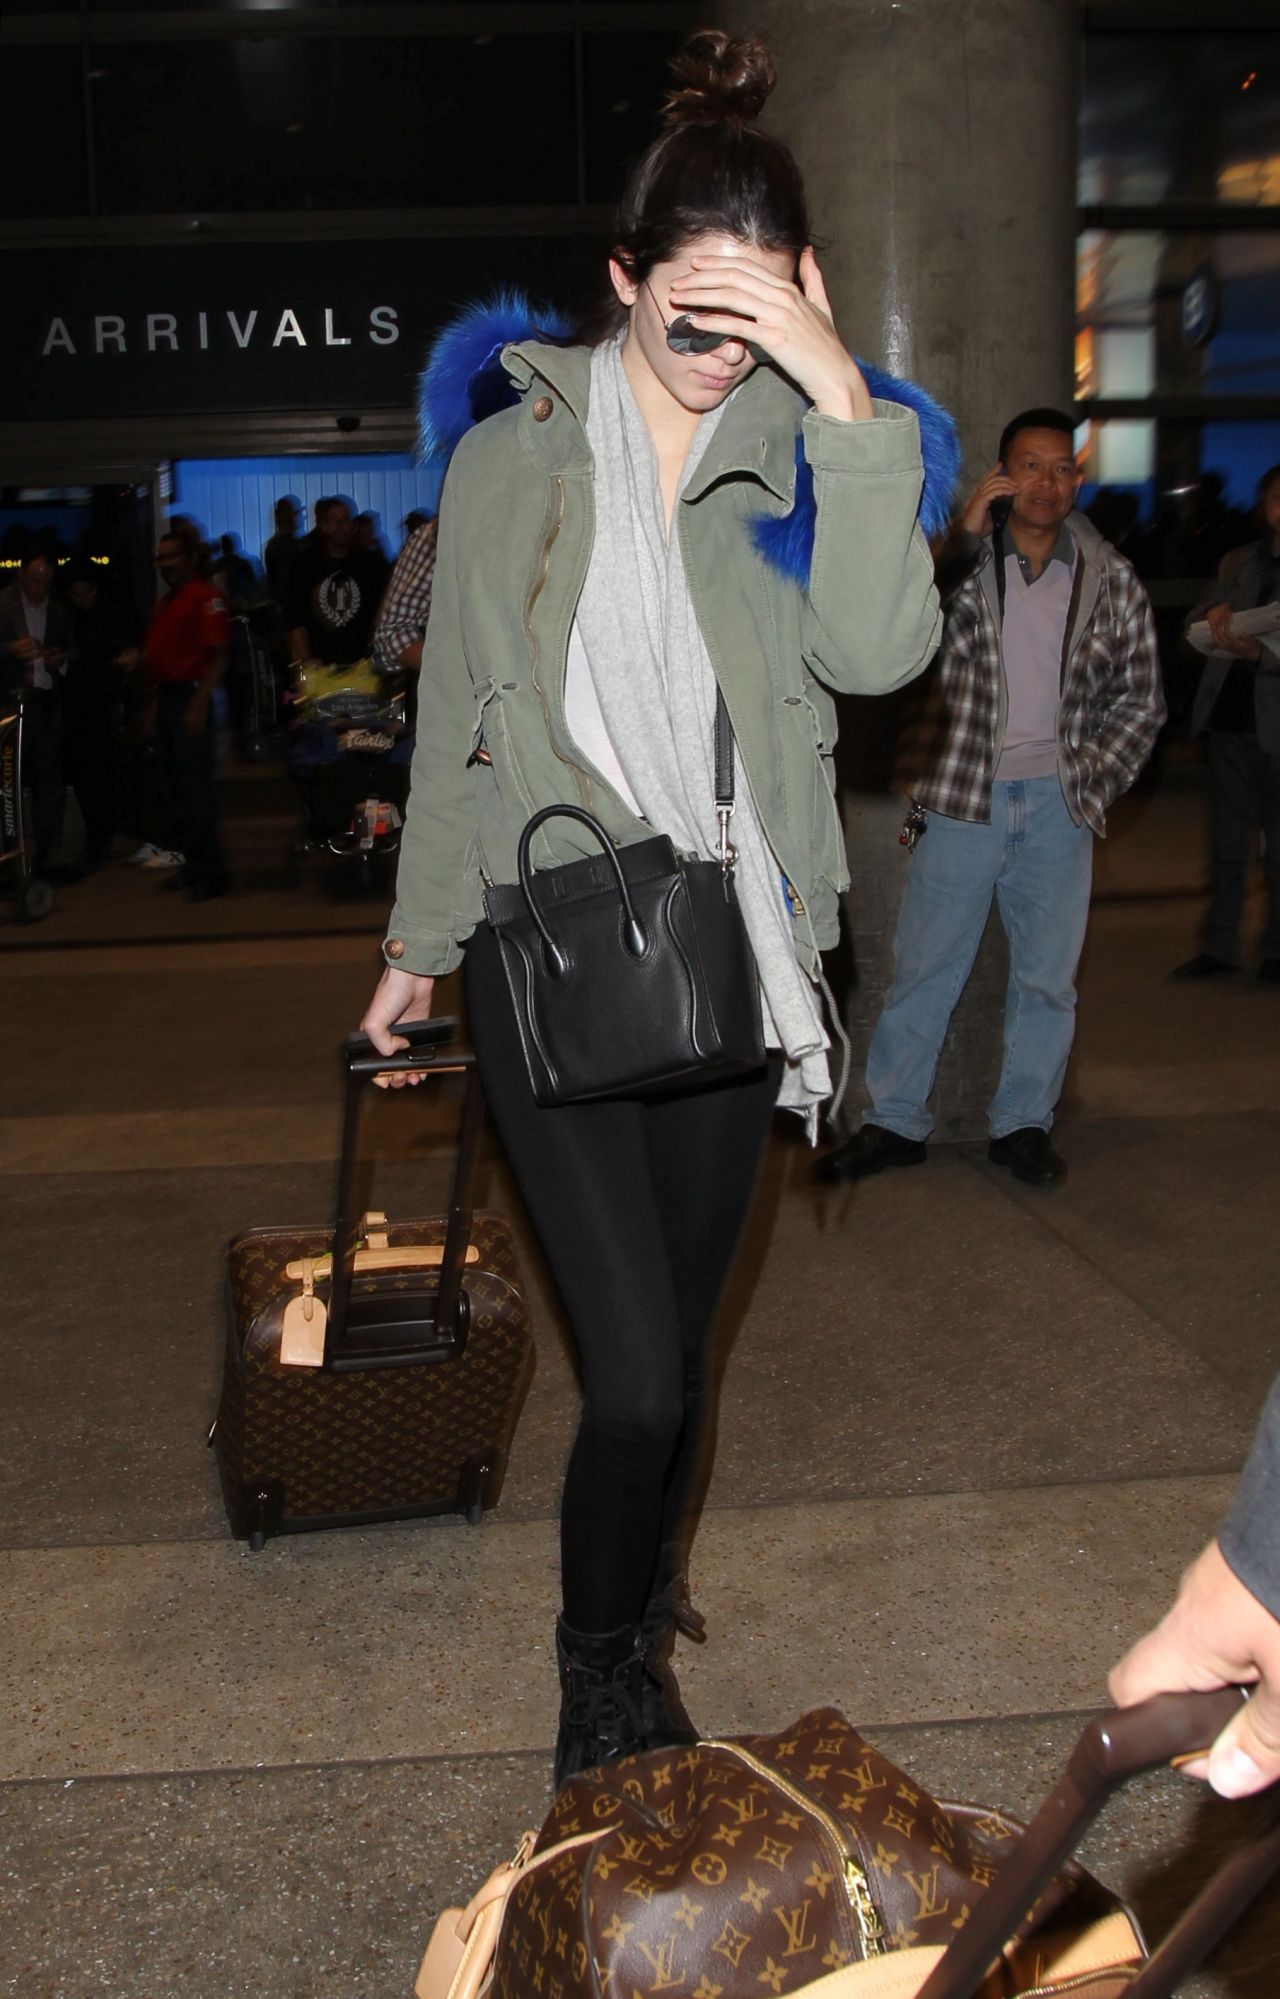 Kendall Jenner Street Style - Leaving LAX Aiport - December 2013